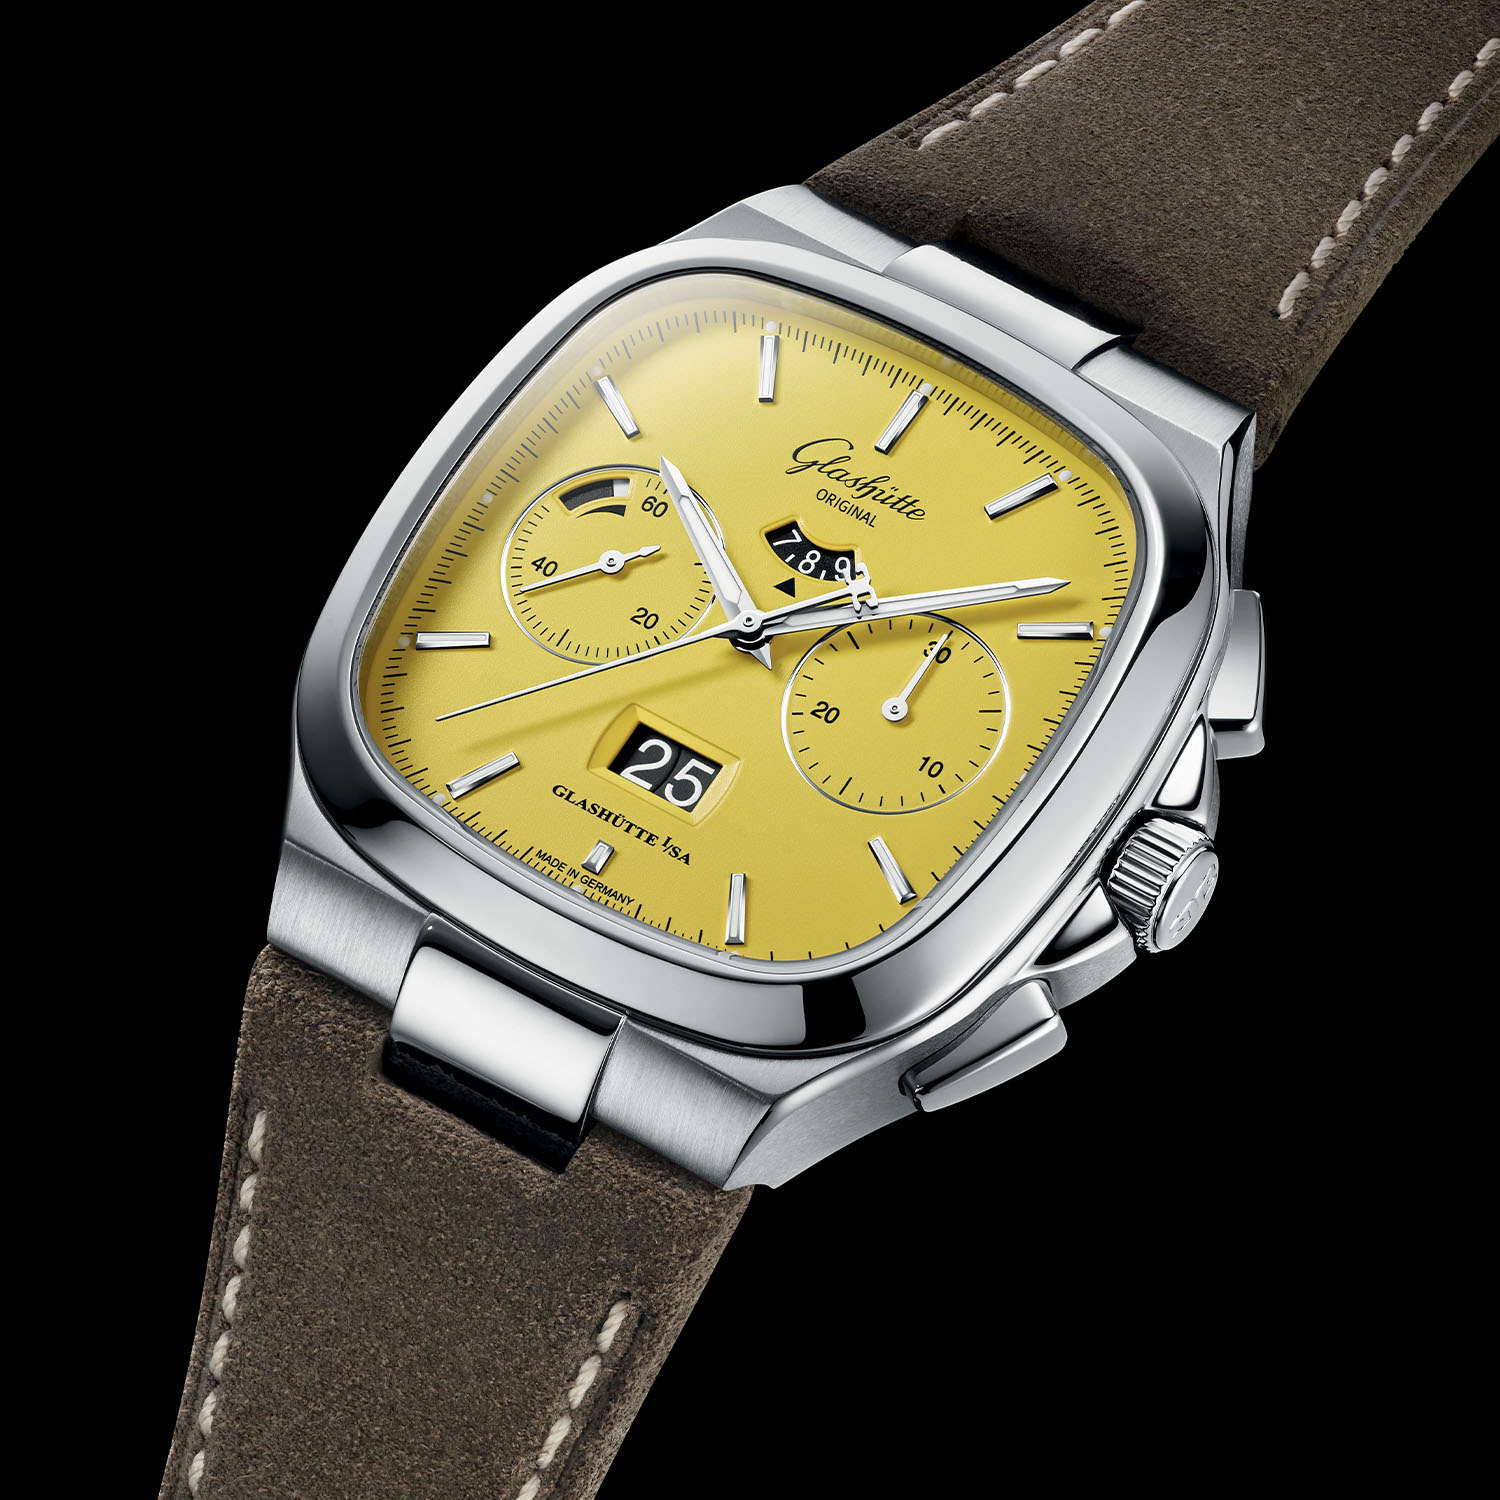 Glashutte Original Seventies Chronograph Panorama Date 2021 Limited Editions sunny yellow - 2